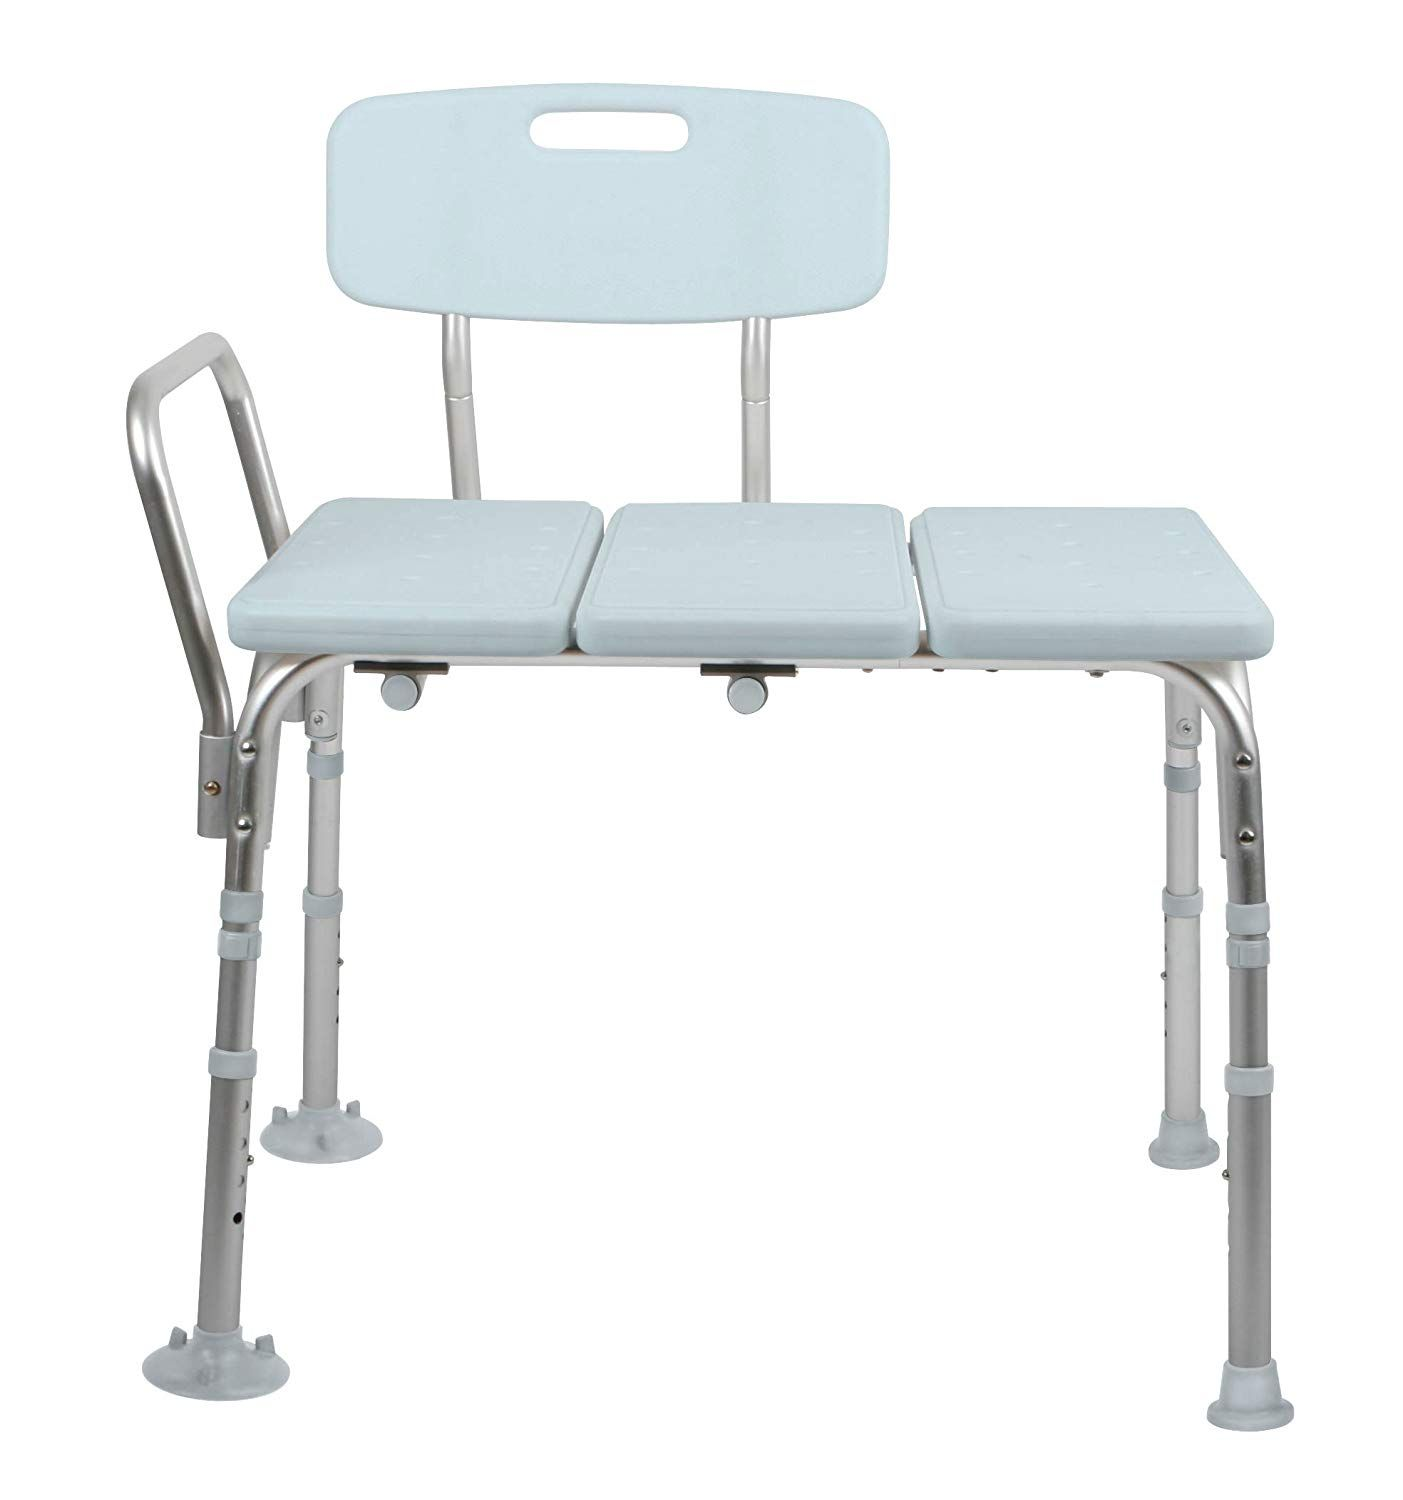 Medline Microban Medical Transfer Bench With Antimicrobial Protection For Bath Safety Shower Use And Bacteria Transfer Bench Benches For Sale Bench With Back